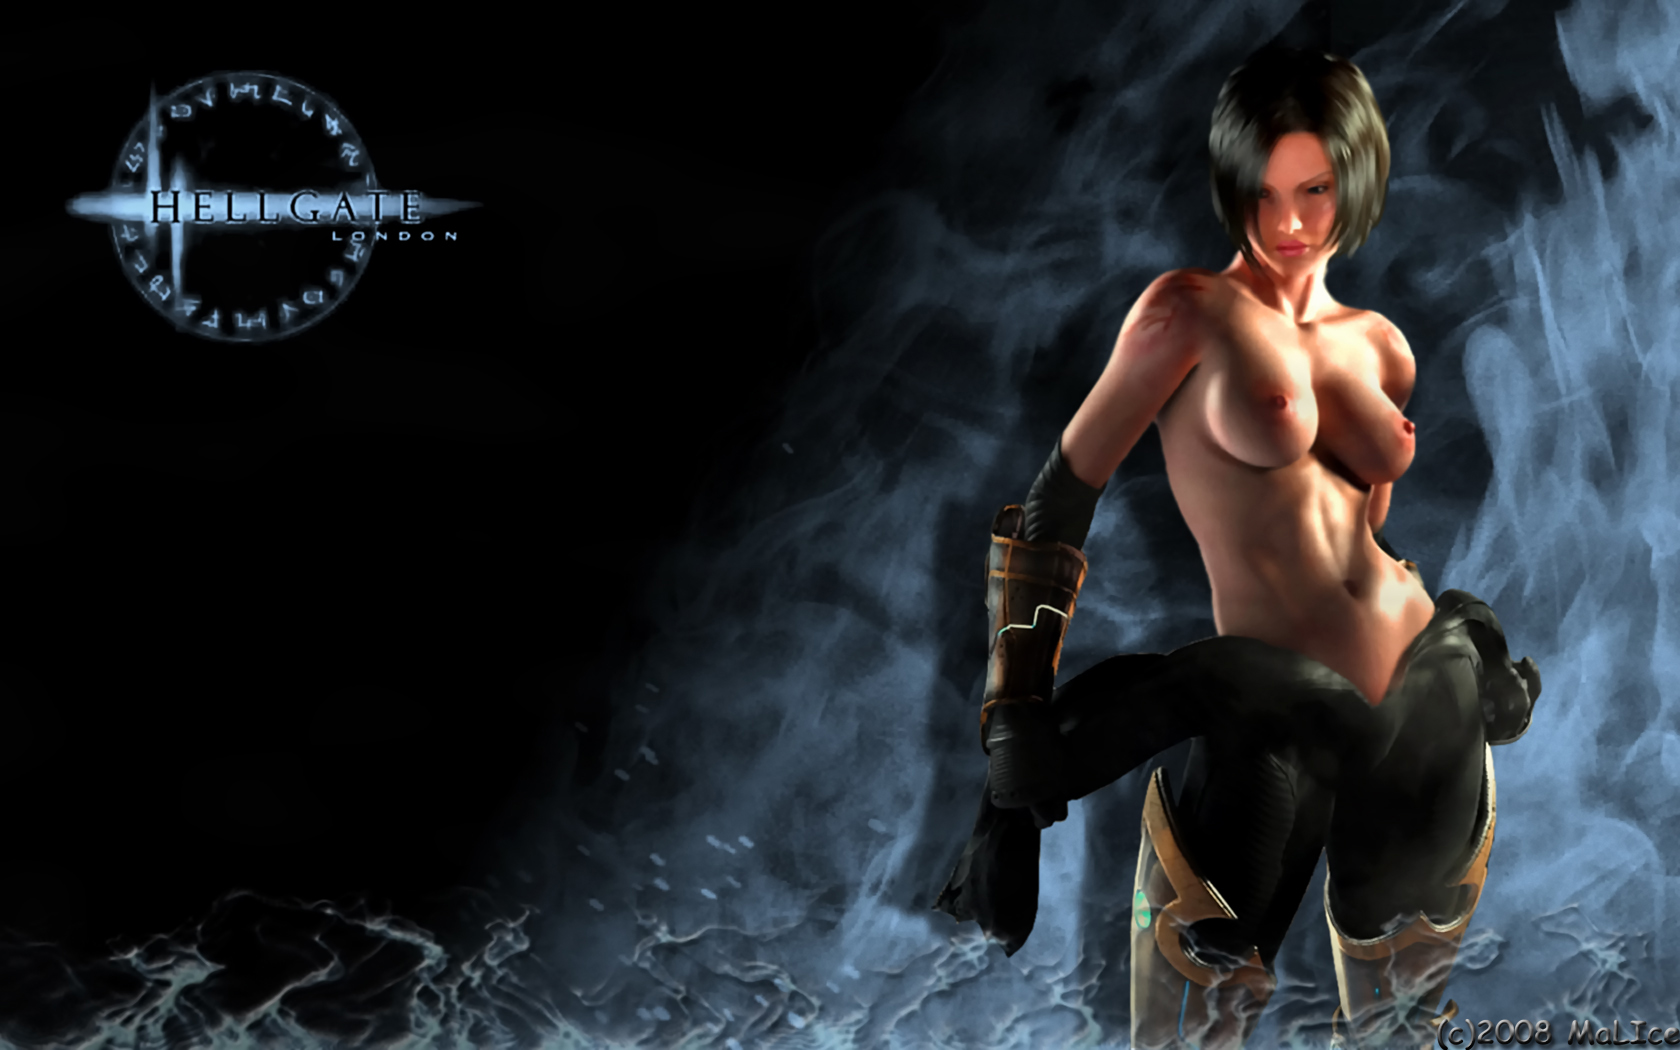 Hellgate london hd nude patch sex image